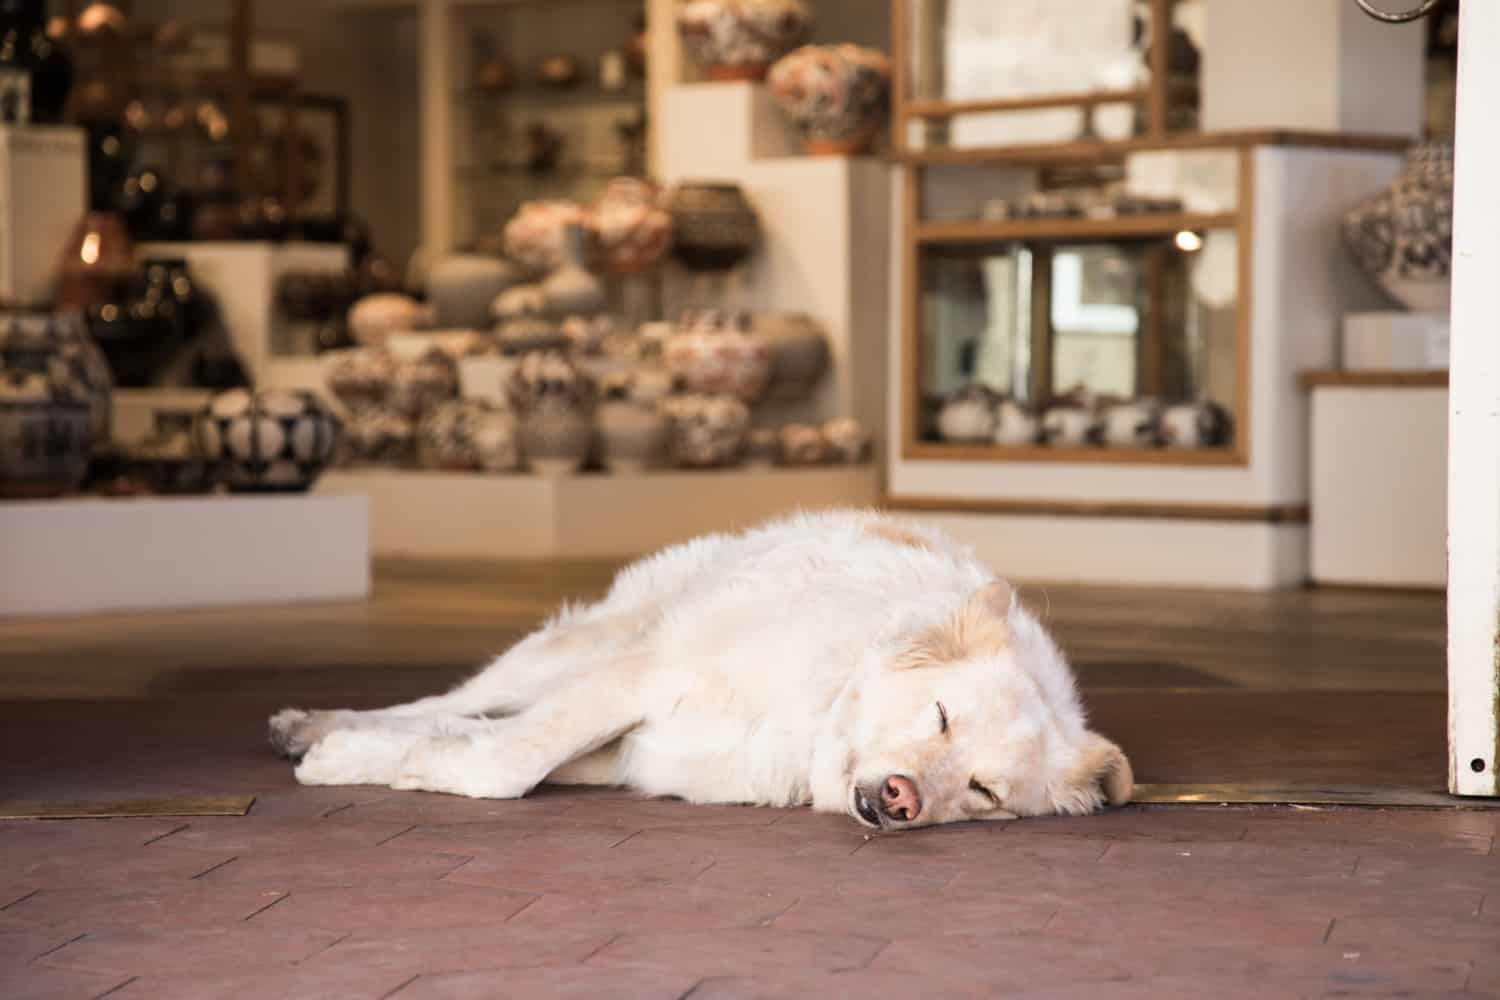 Pet Friendly Things To Do In Santa Fe